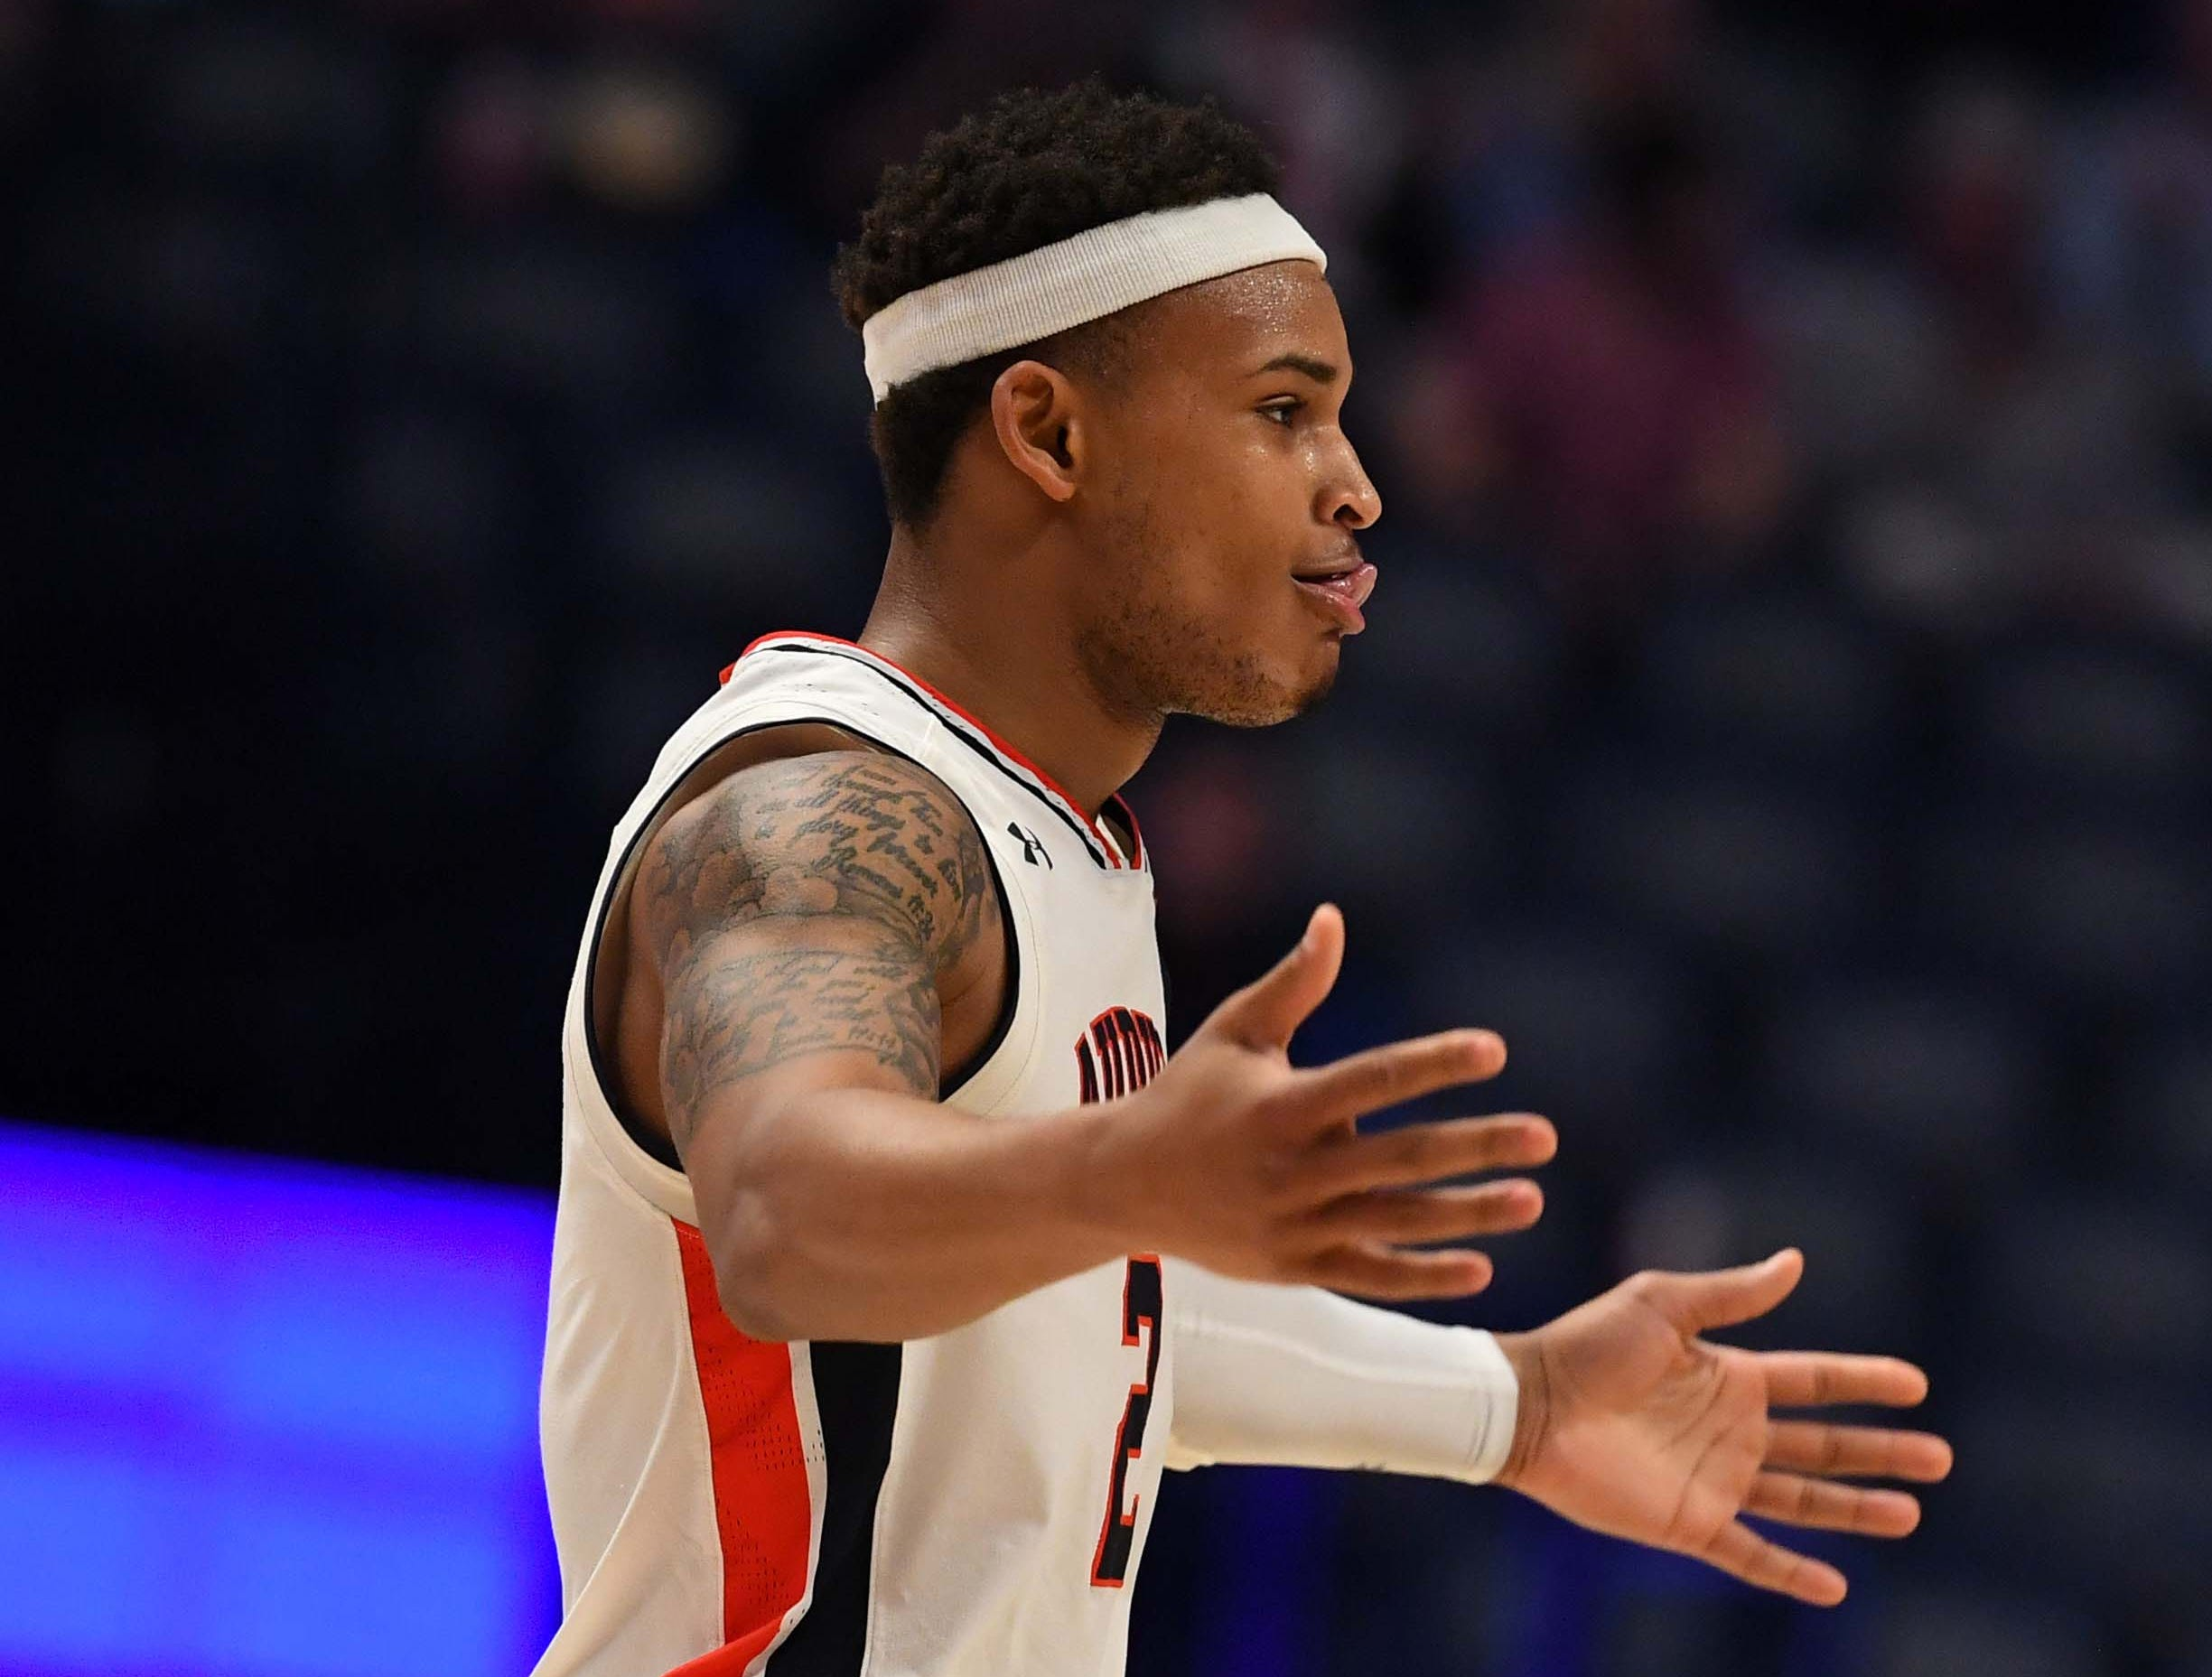 Mar 14, 2019; Nashville, TN, USA; Auburn Tigers guard Bryce Brown (2) celebrates after a basket during the second half against the Missouri Tigers of the SEC conference tournament at Bridgestone Arena. Mandatory Credit: Christopher Hanewinckel-USA TODAY Sports